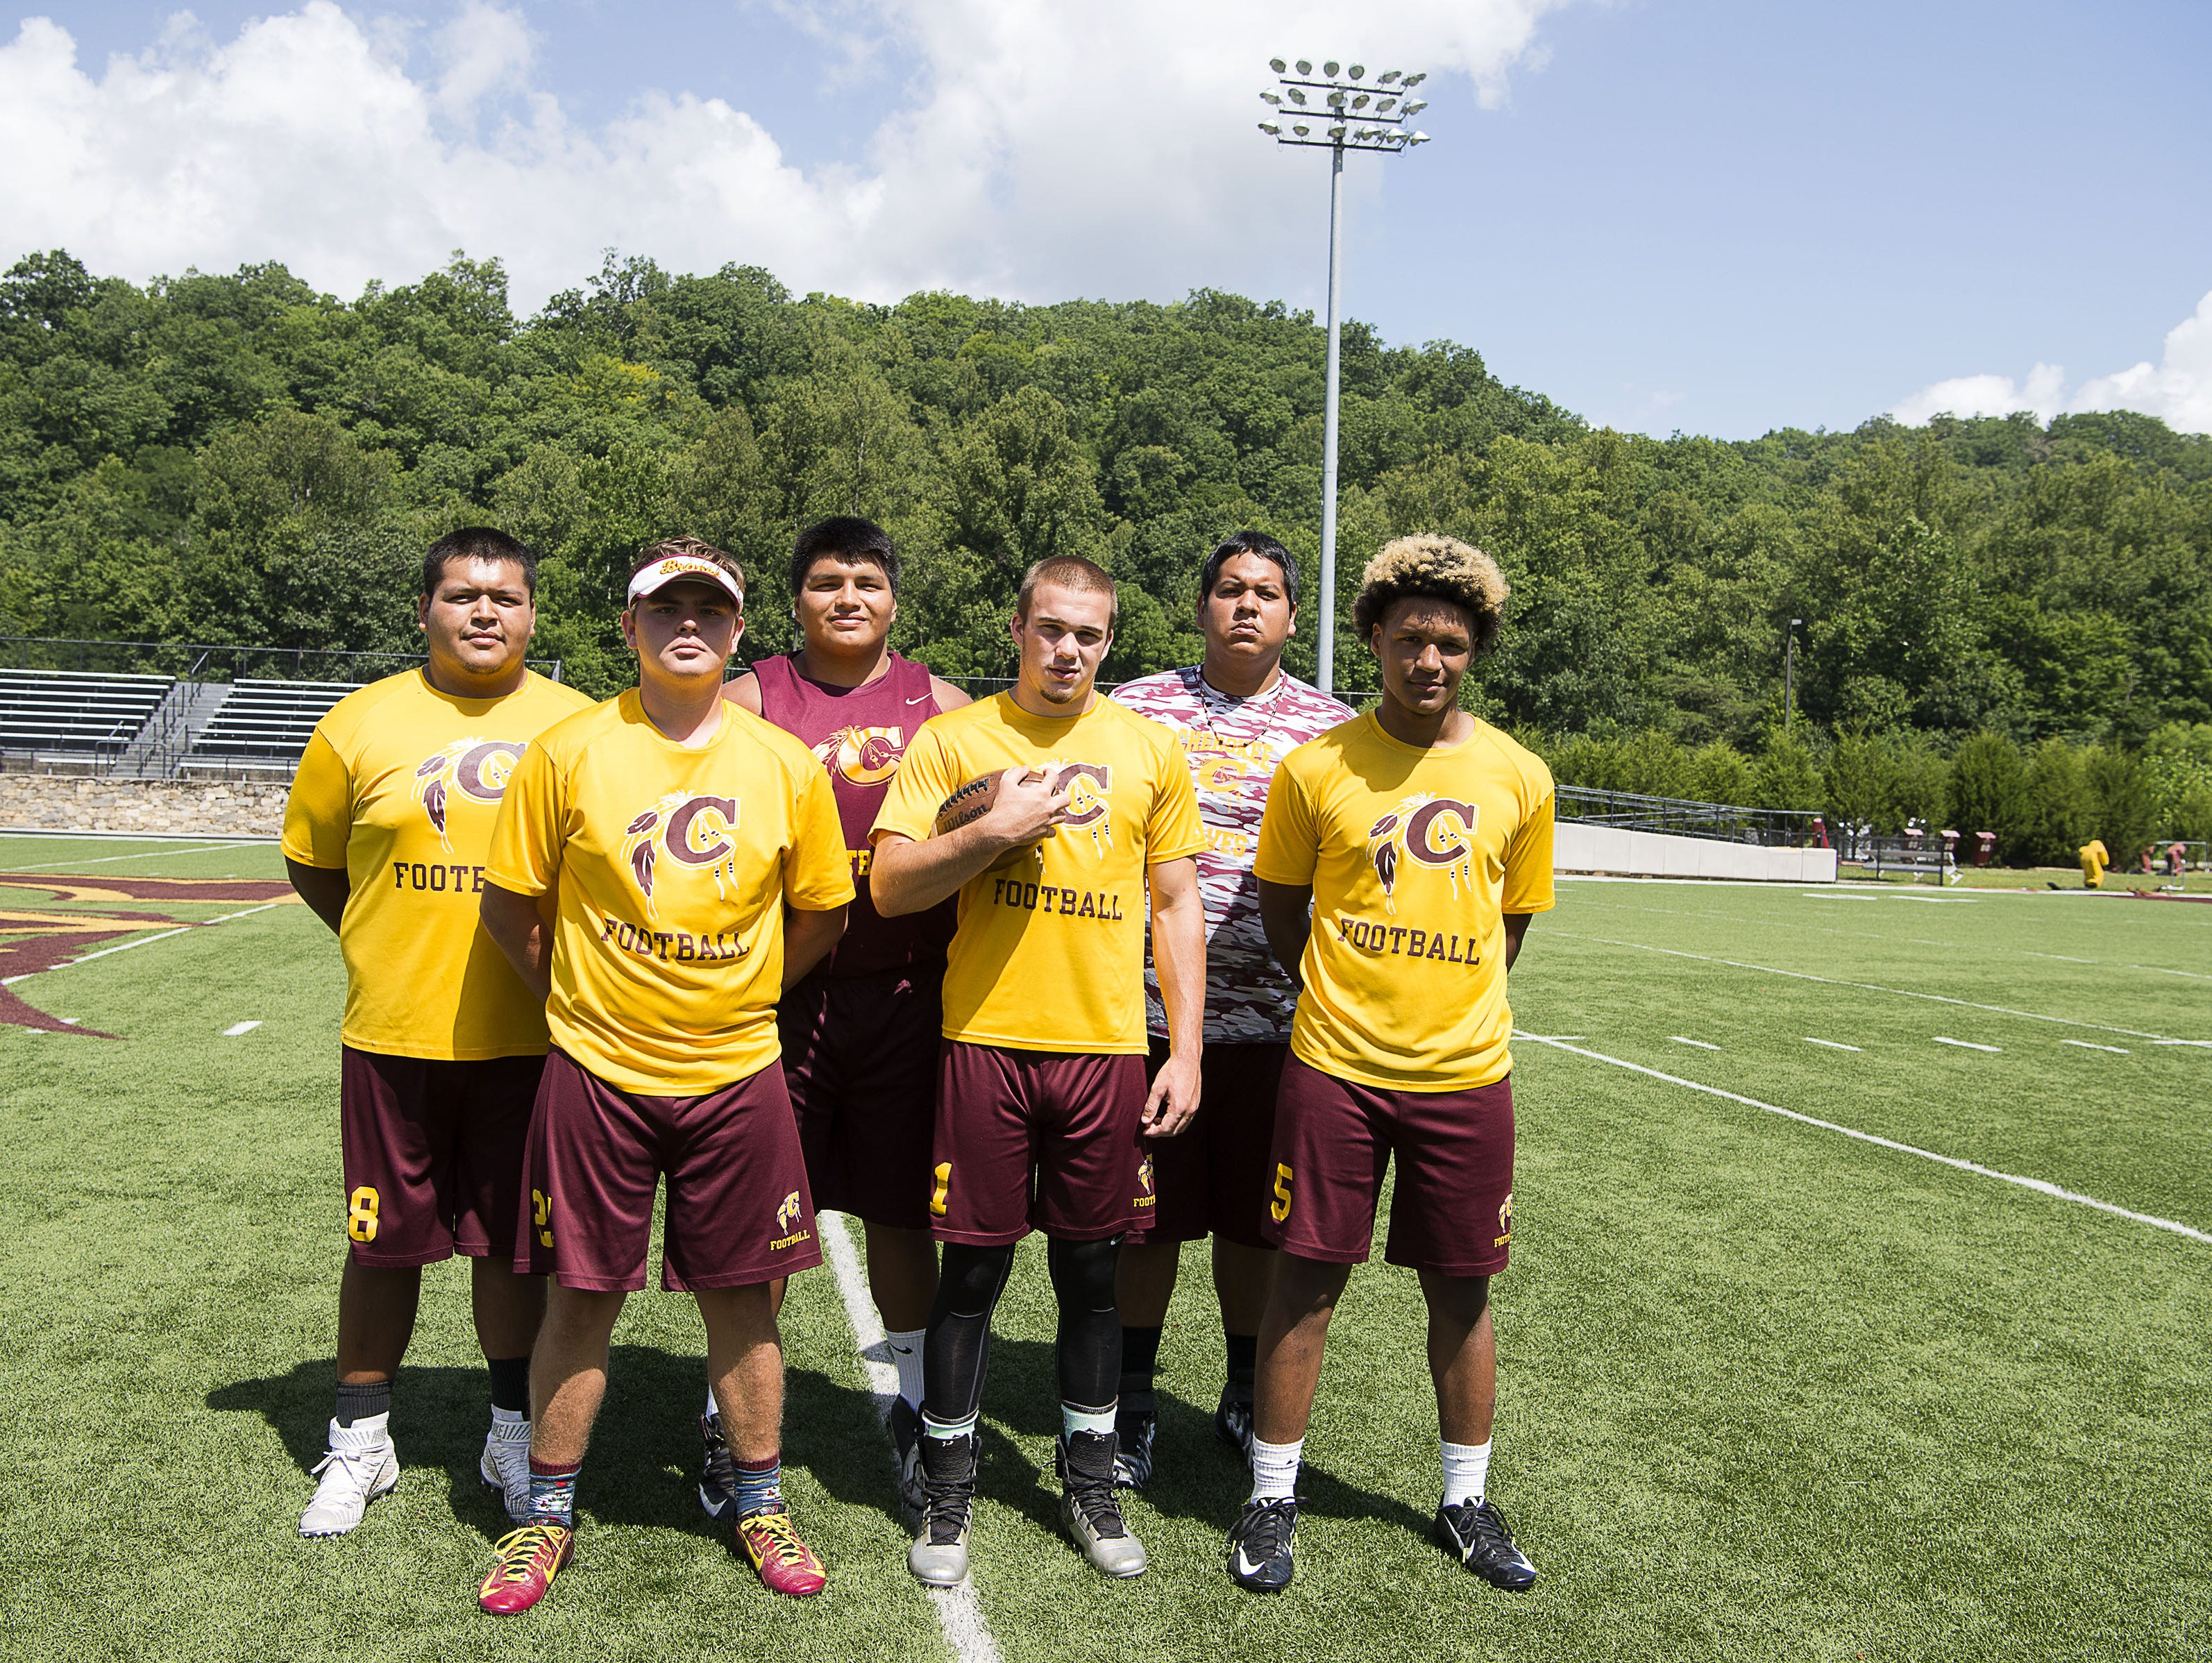 Cherokee football players Jay Swimmer, Byron Locust, Kendall Driver, Dodge Crowe-Moss, Ty Mintz and Isaiah Evans.